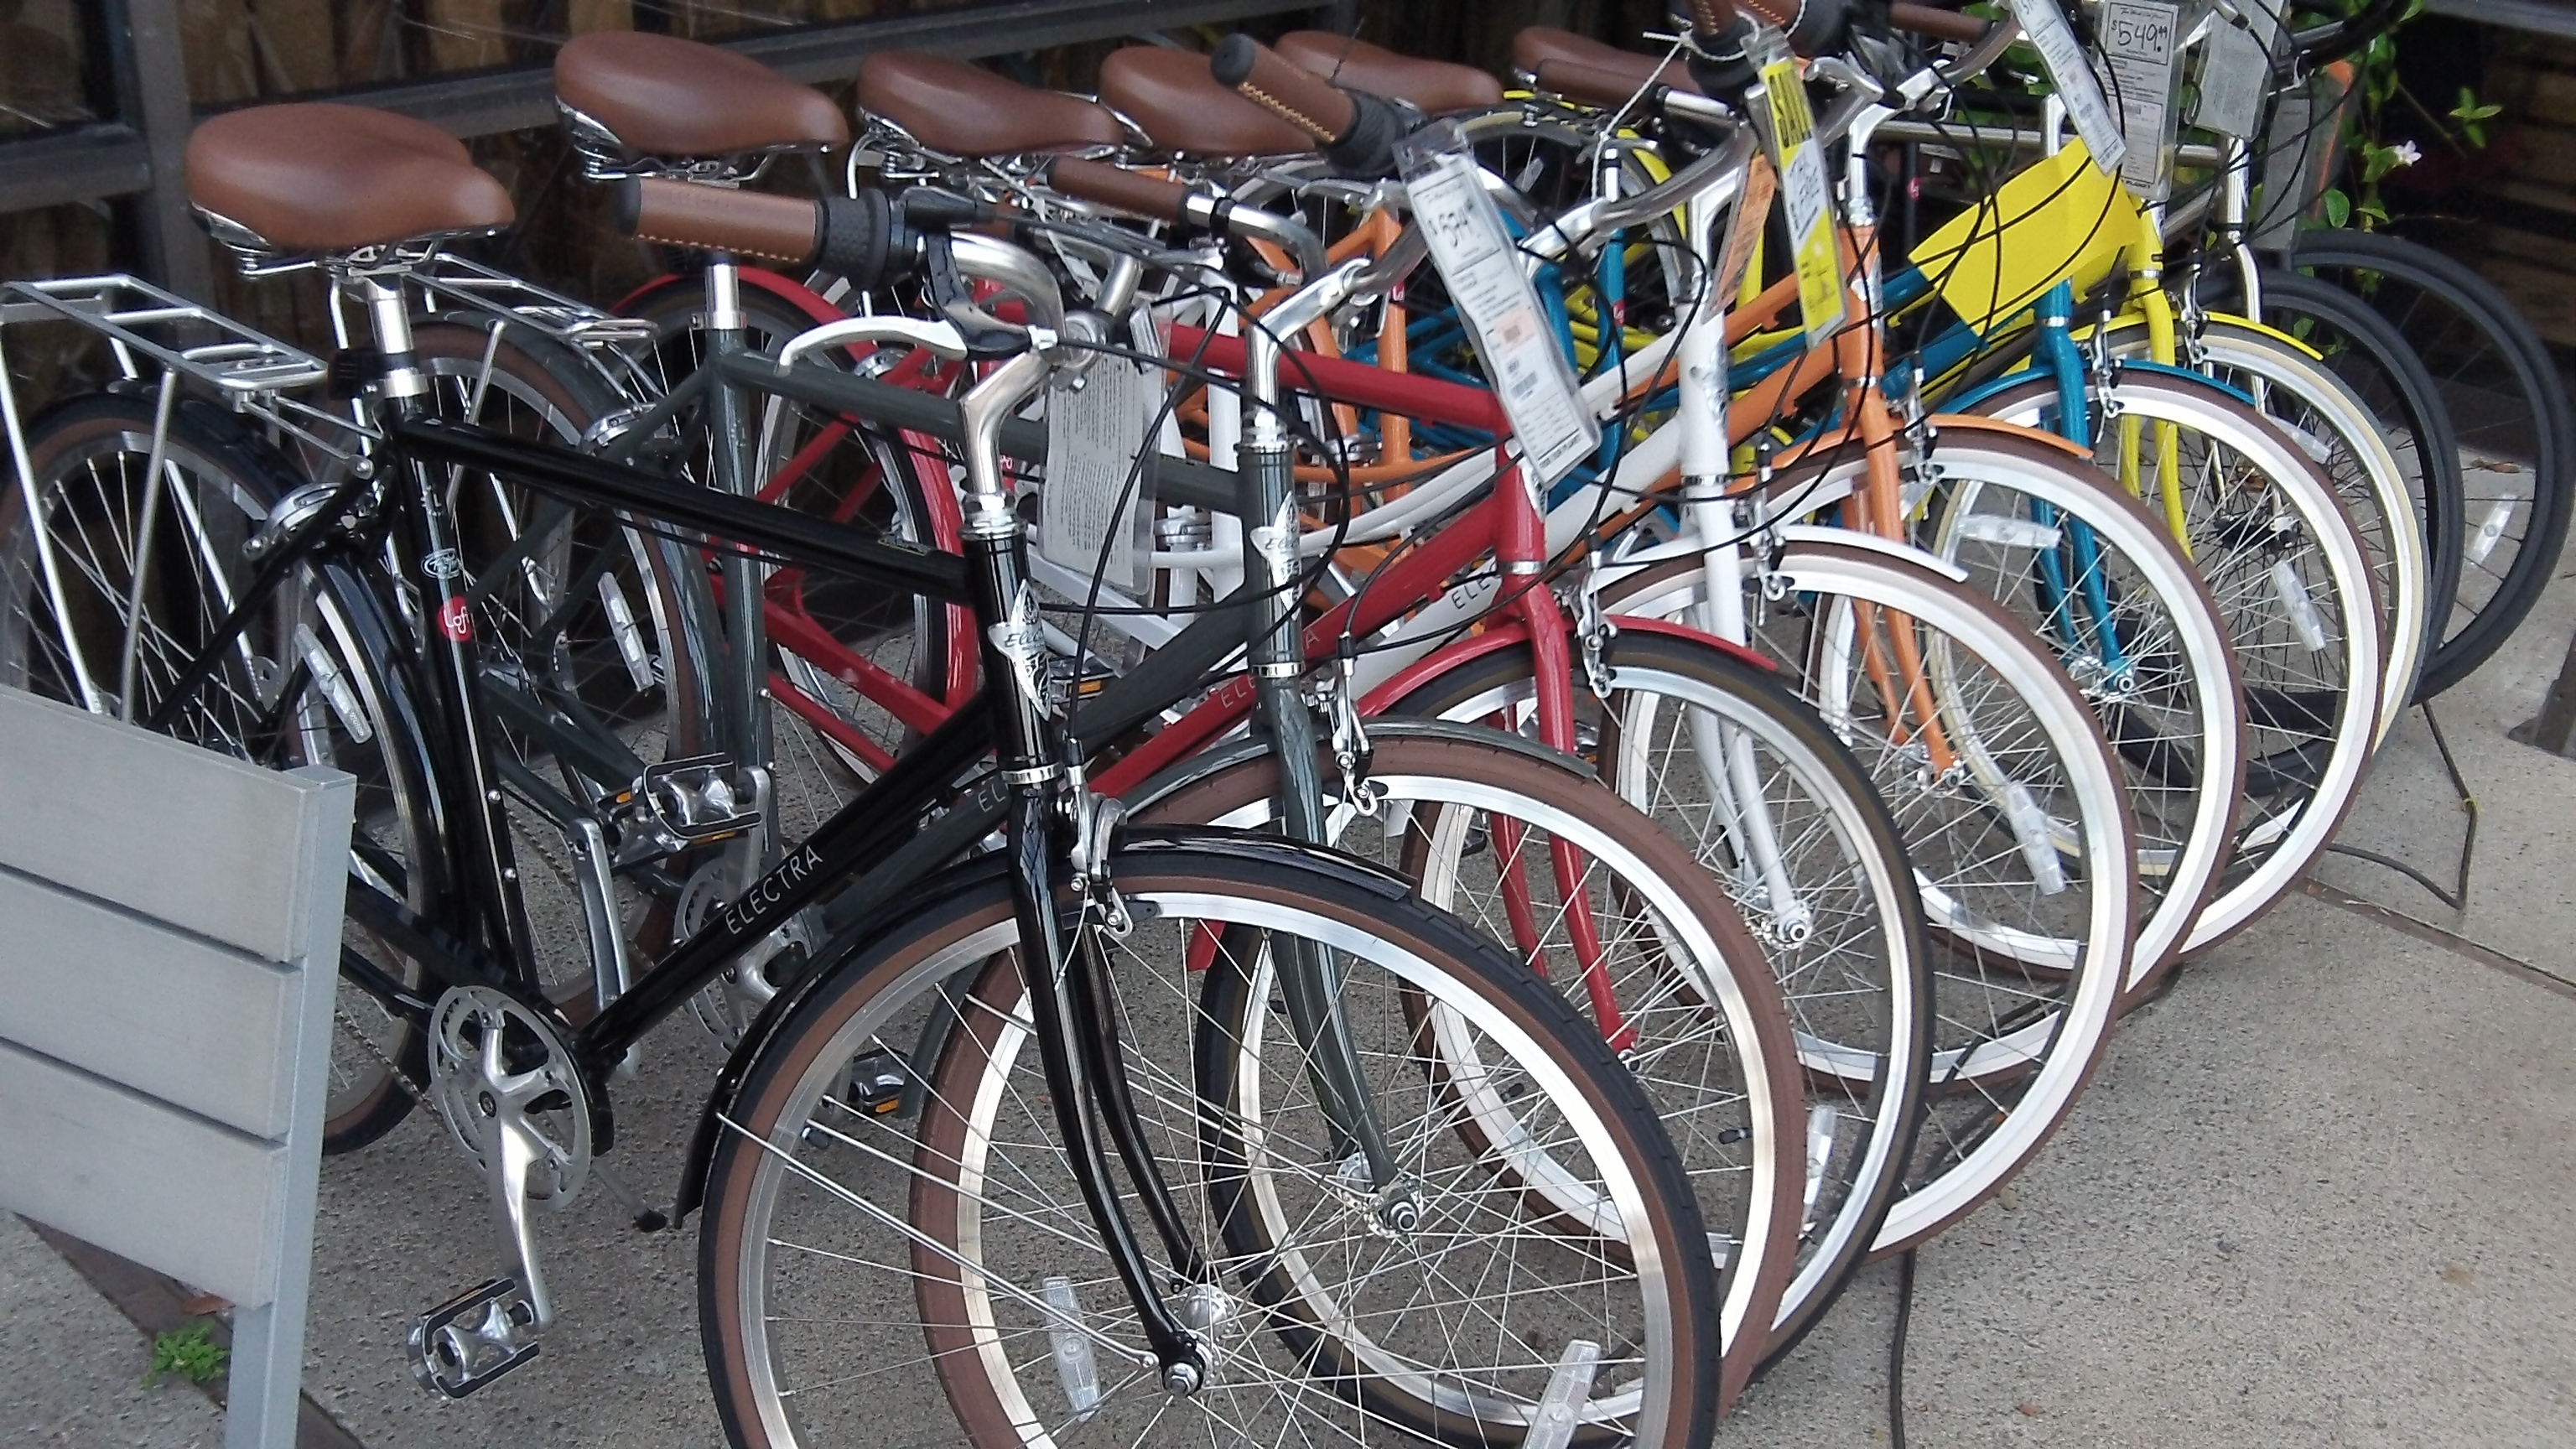 Want to reduce emissions? Promote the greater use of bikes.